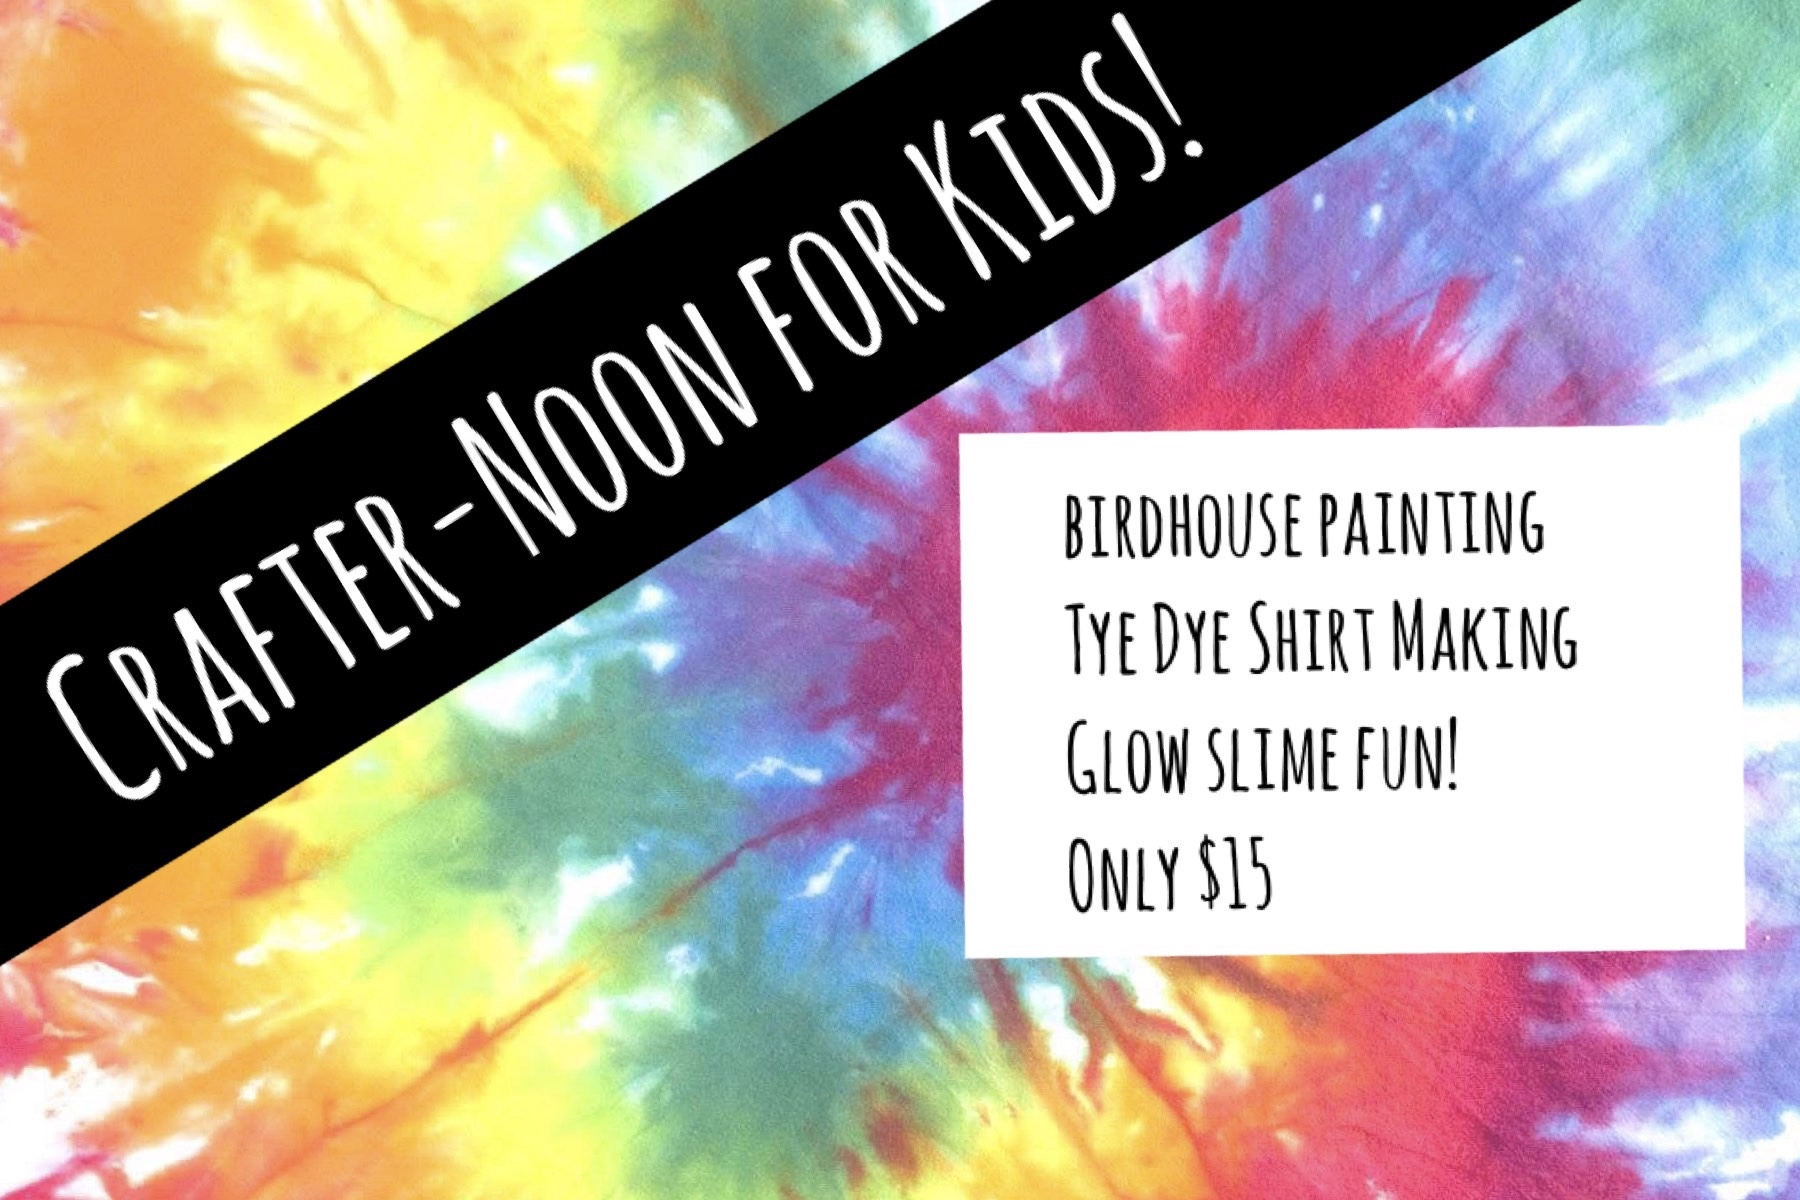 Kids Crafter-noon $15 Special